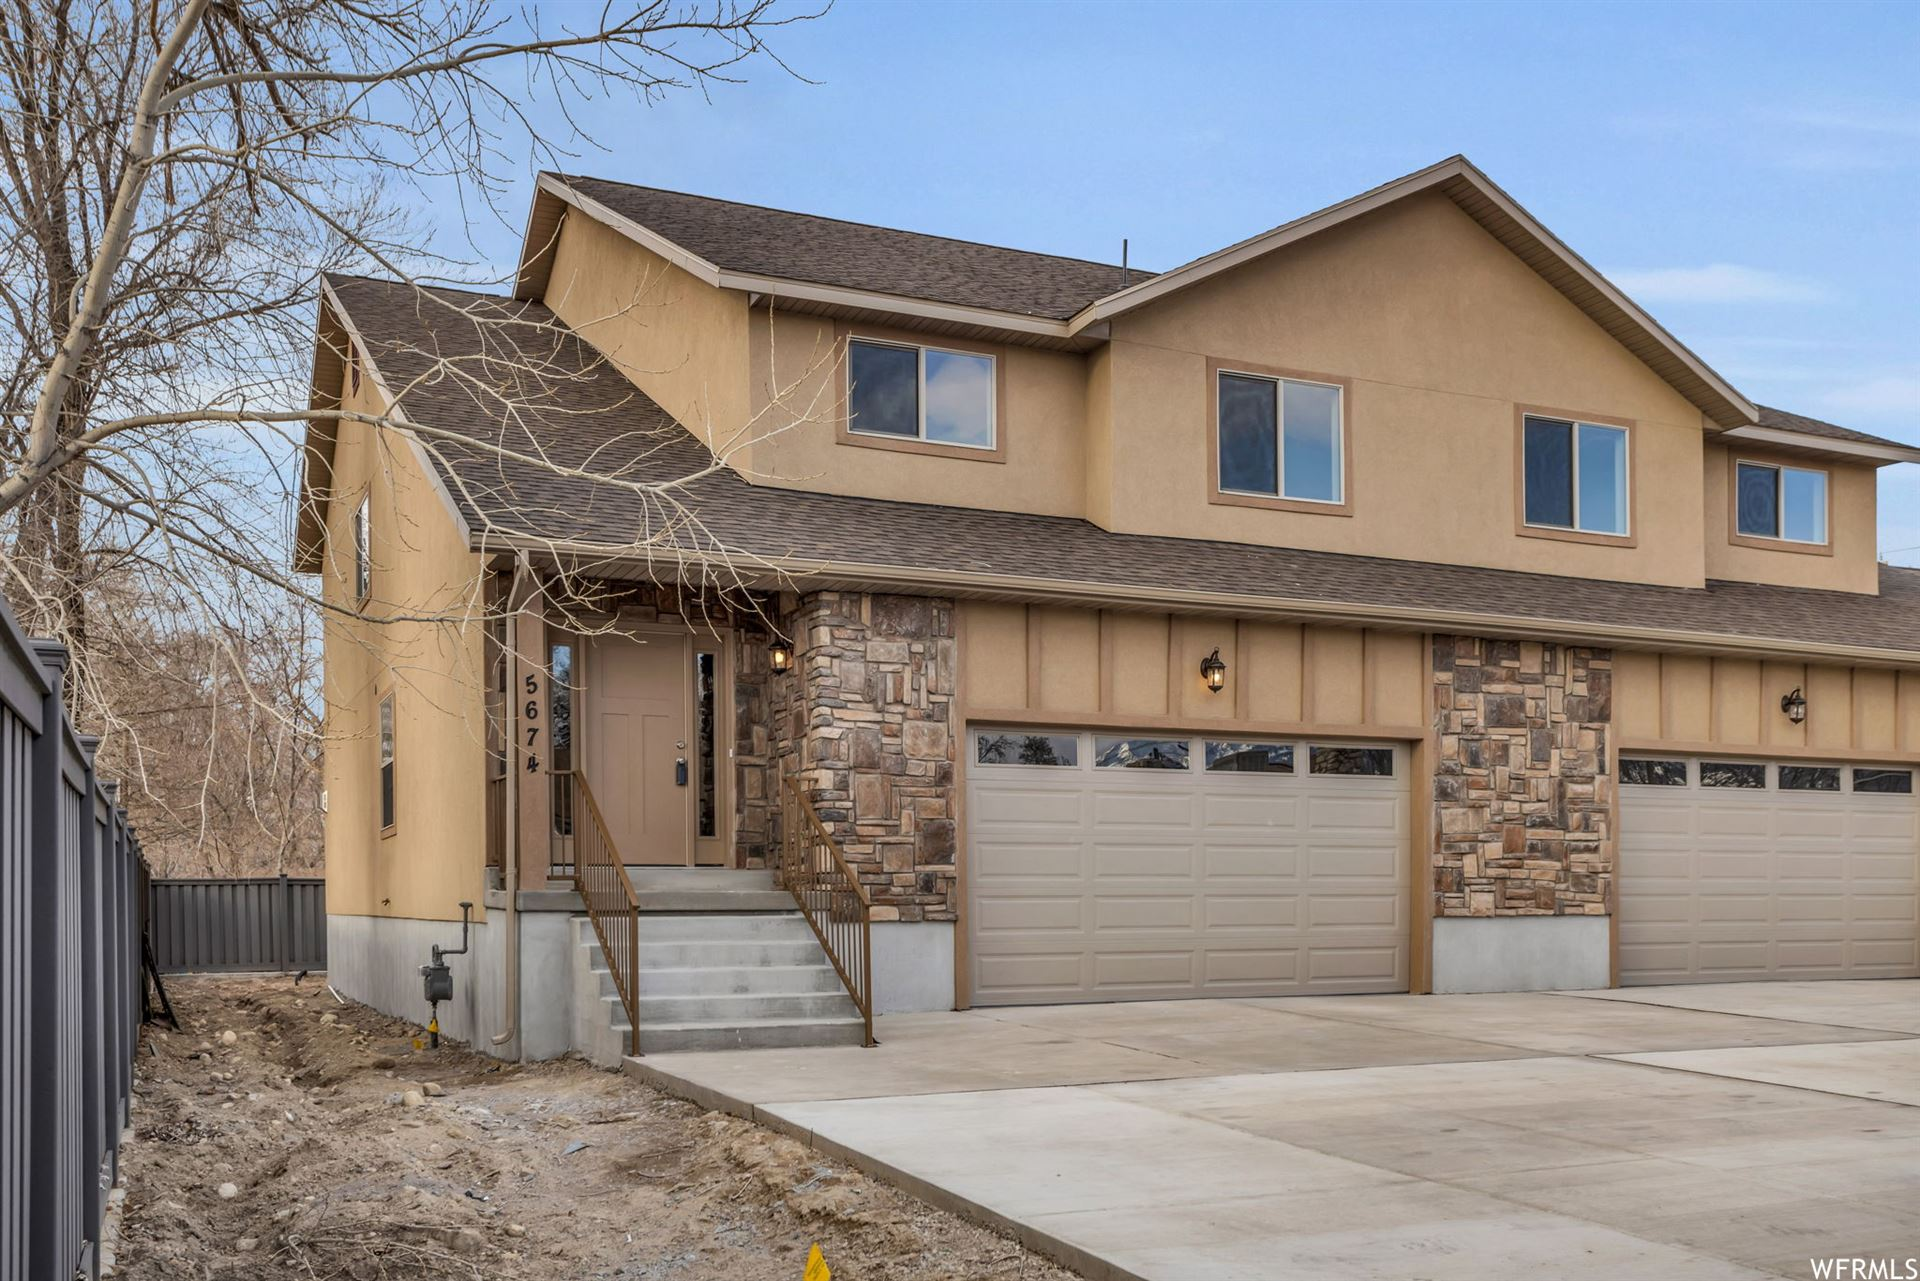 Photo of 5674 S 1300 E, Murray, UT 84117 (MLS # 1730710)